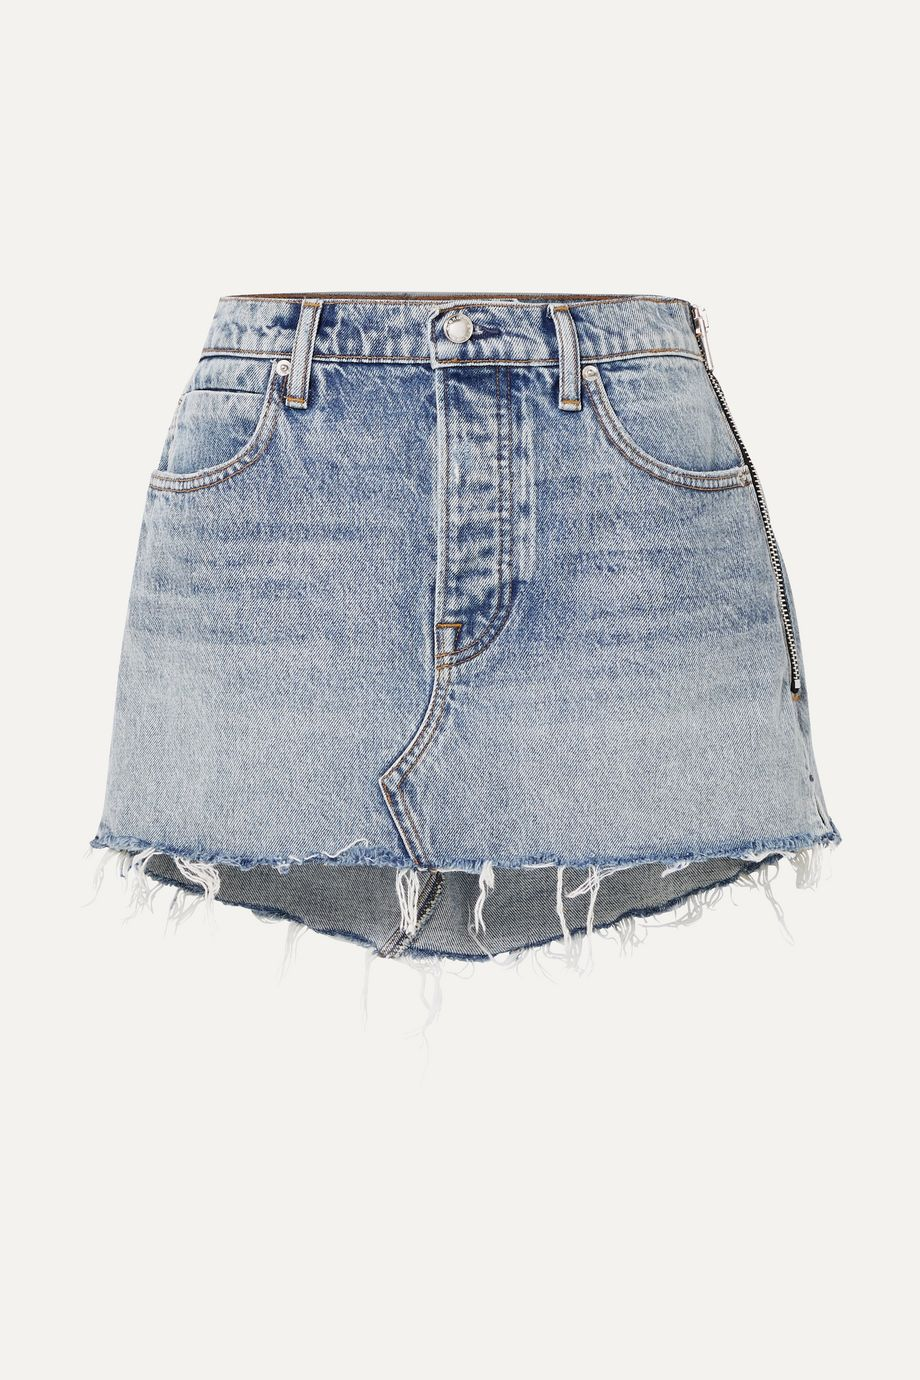 Alexander Wang Snip zip-embellished frayed denim mini skirt